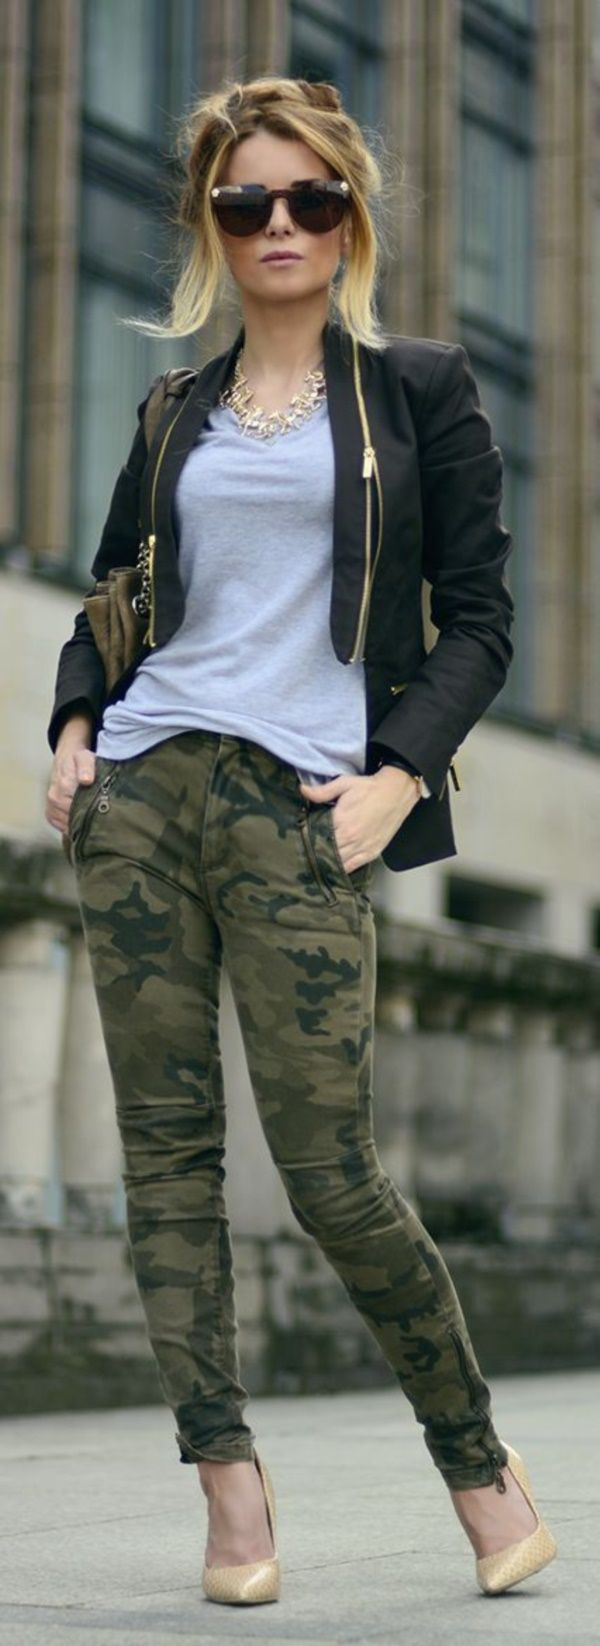 Ways to Look Cool in Army Pants This Year 0471